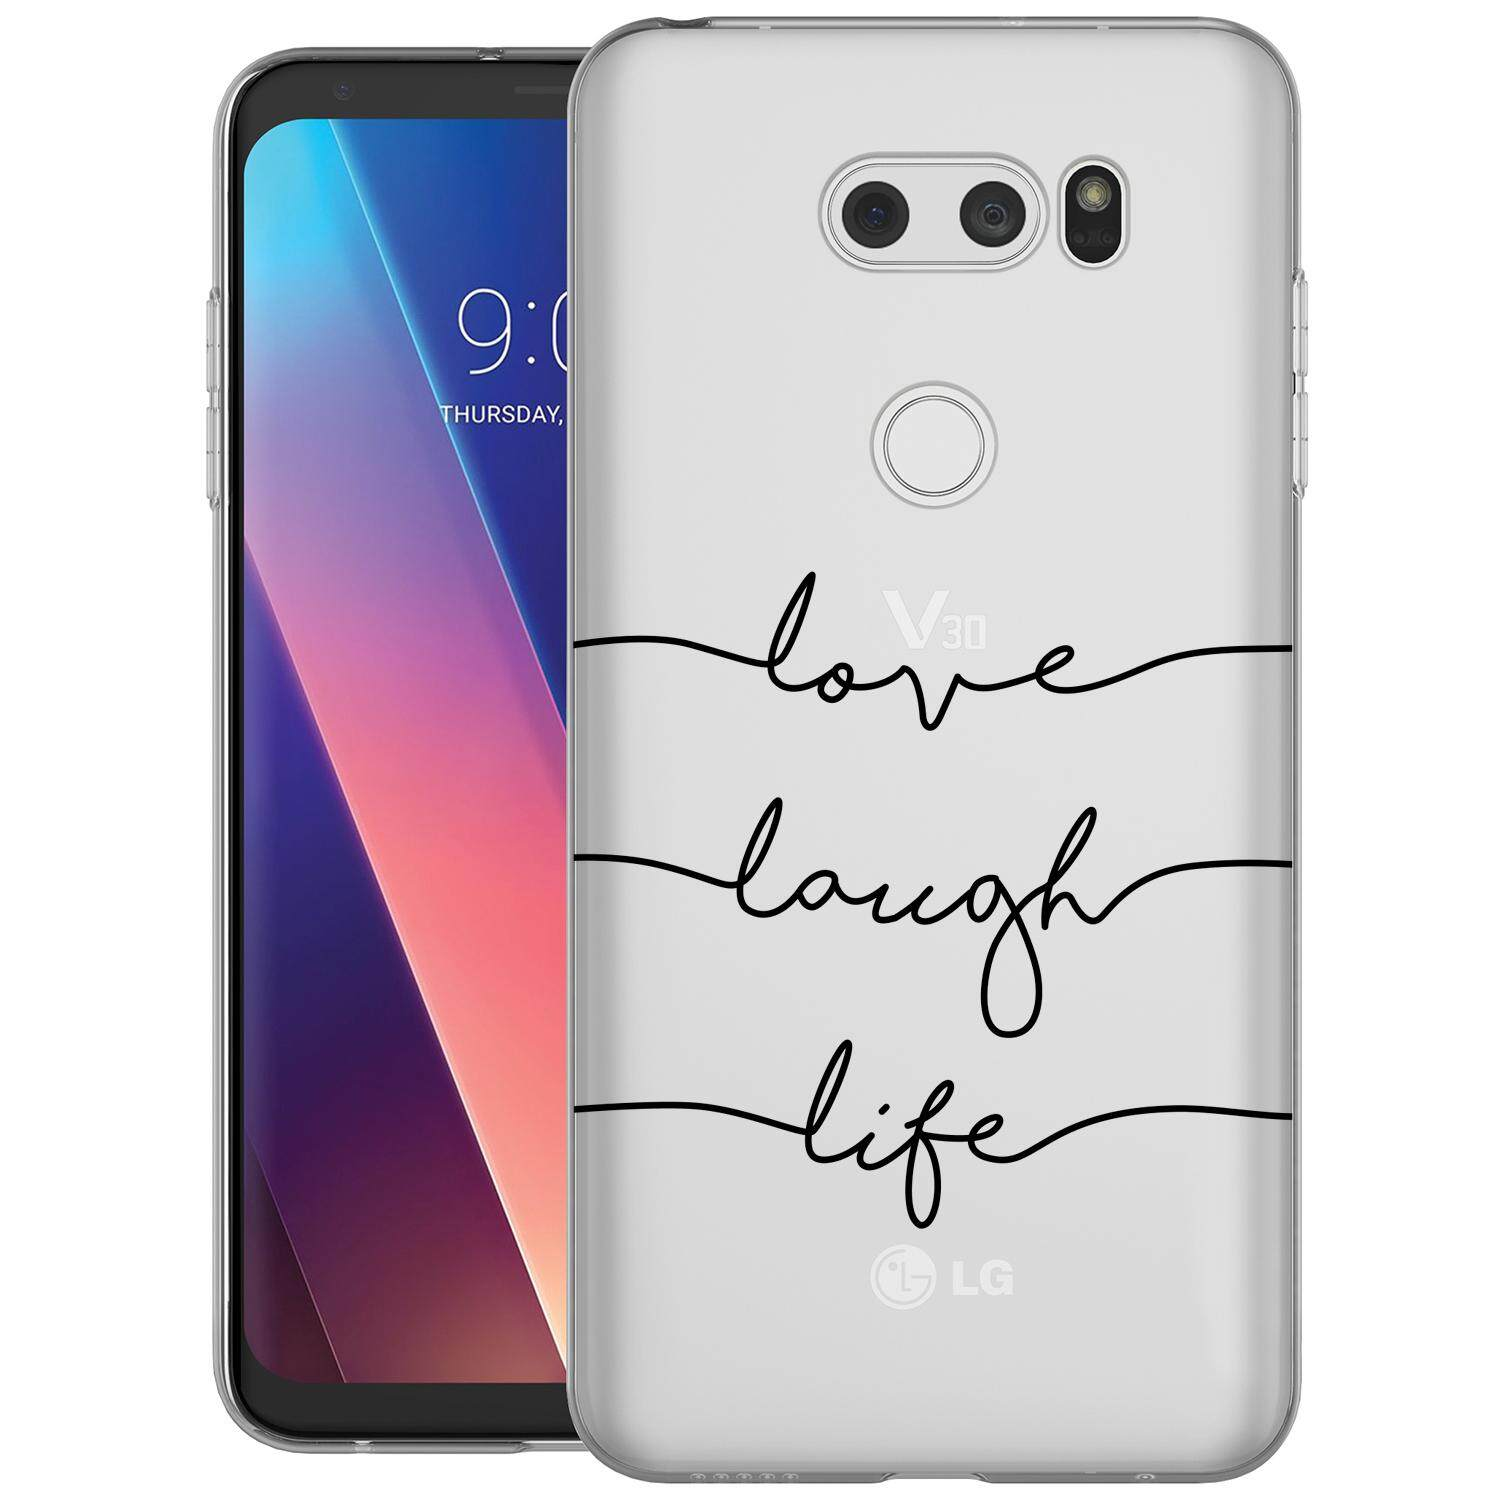 Features Hicase Transparent Ultra Slim Anti Shock Cushion Soft Silikon Case Lg V20 Nillkin Nature Ultrathin 06mm Original Rymall For V30 Clear Flexible Silicone Absorption Bumper